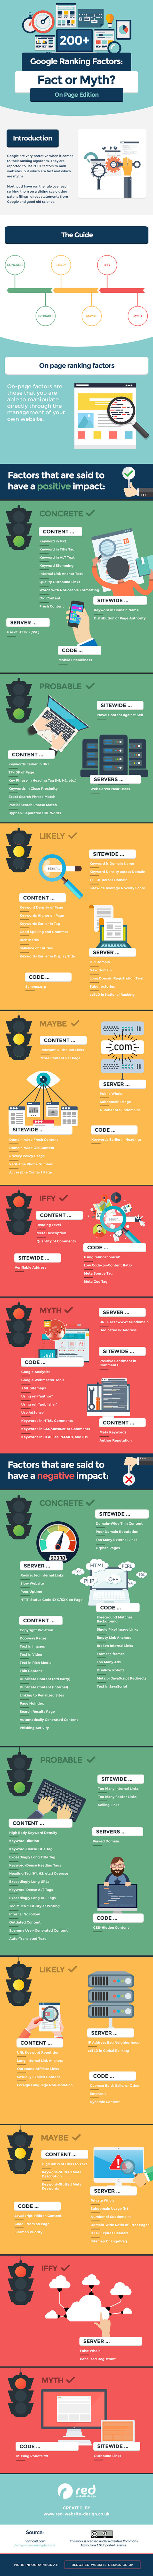 Google On Page Ranking Factors: Are They Fact or Myth #Infographic